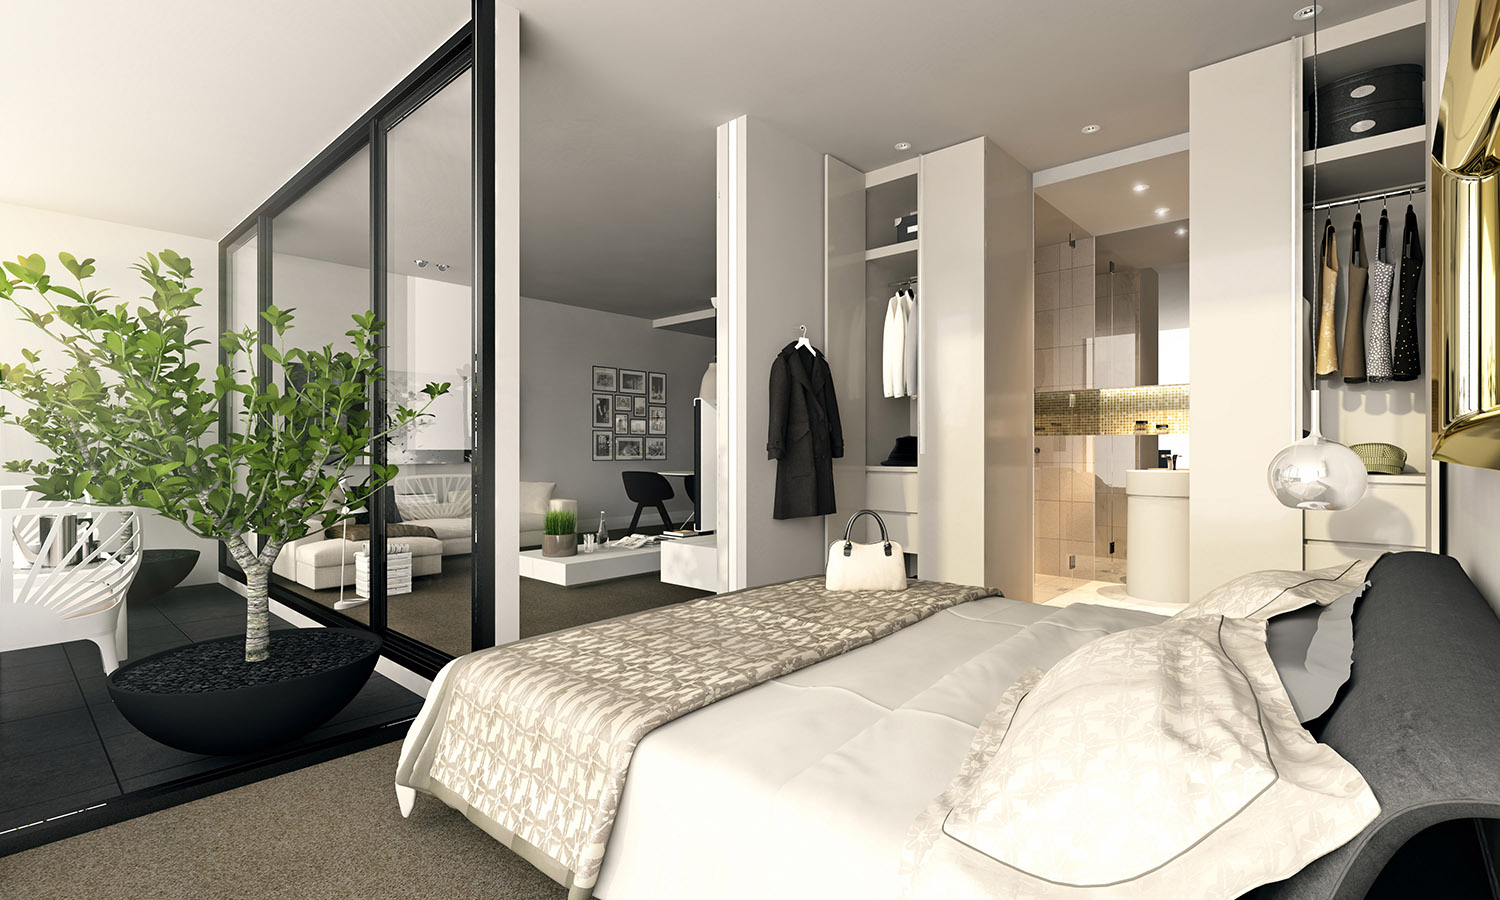 Studio apartment interiors inspiration for Modern small apartment interior